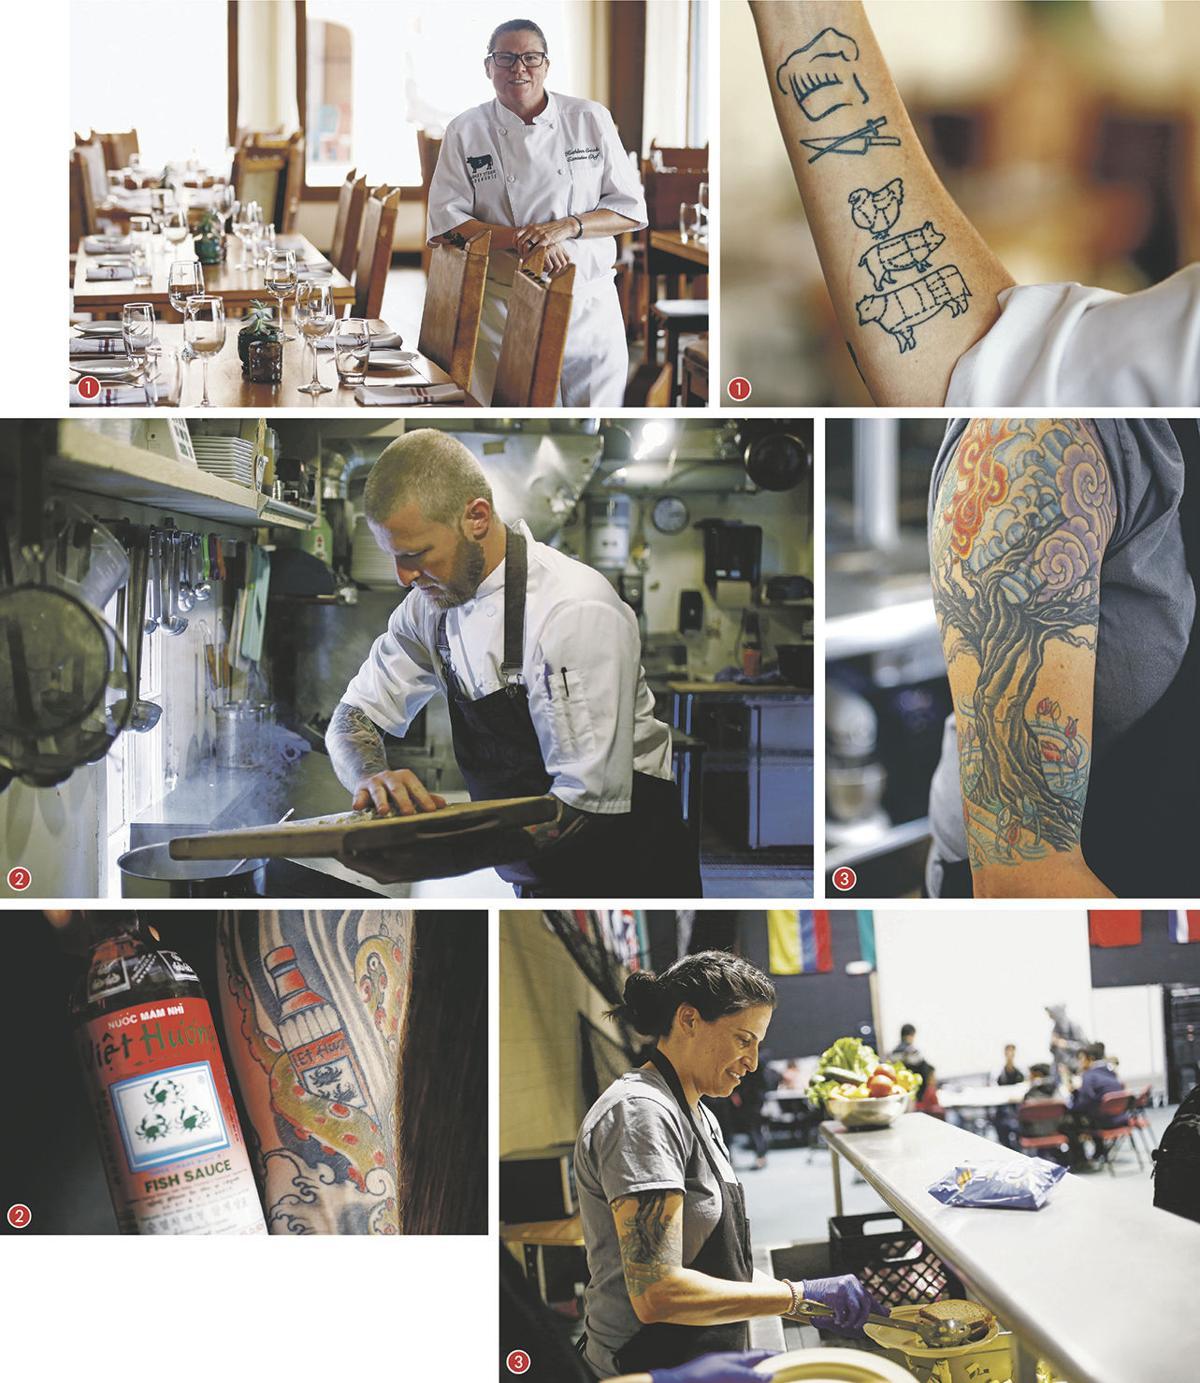 Tatted restaurant workers